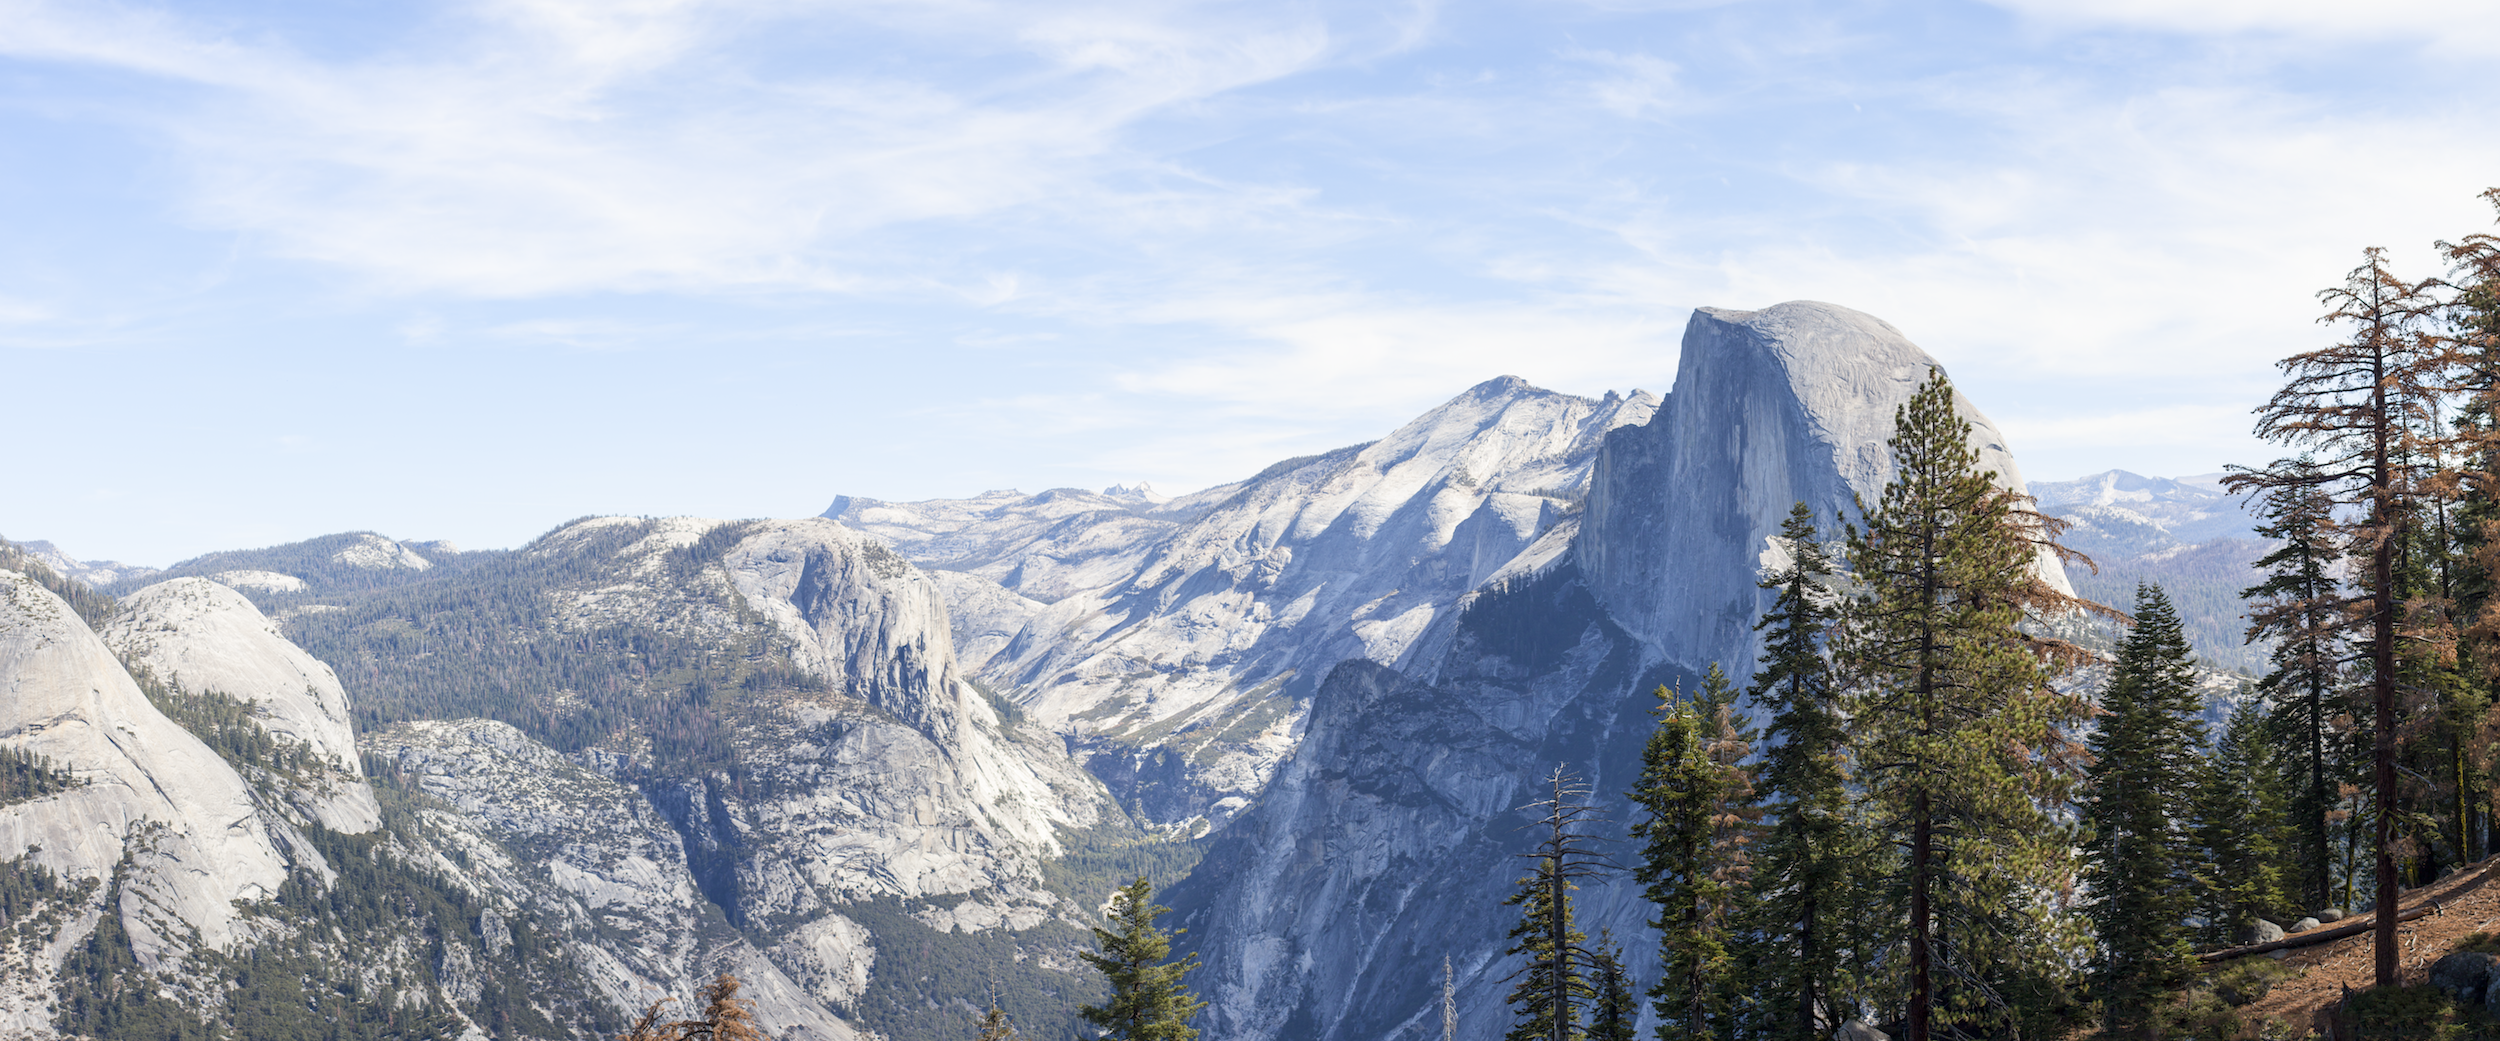 DONATE TO YWAM YOSEMITE -